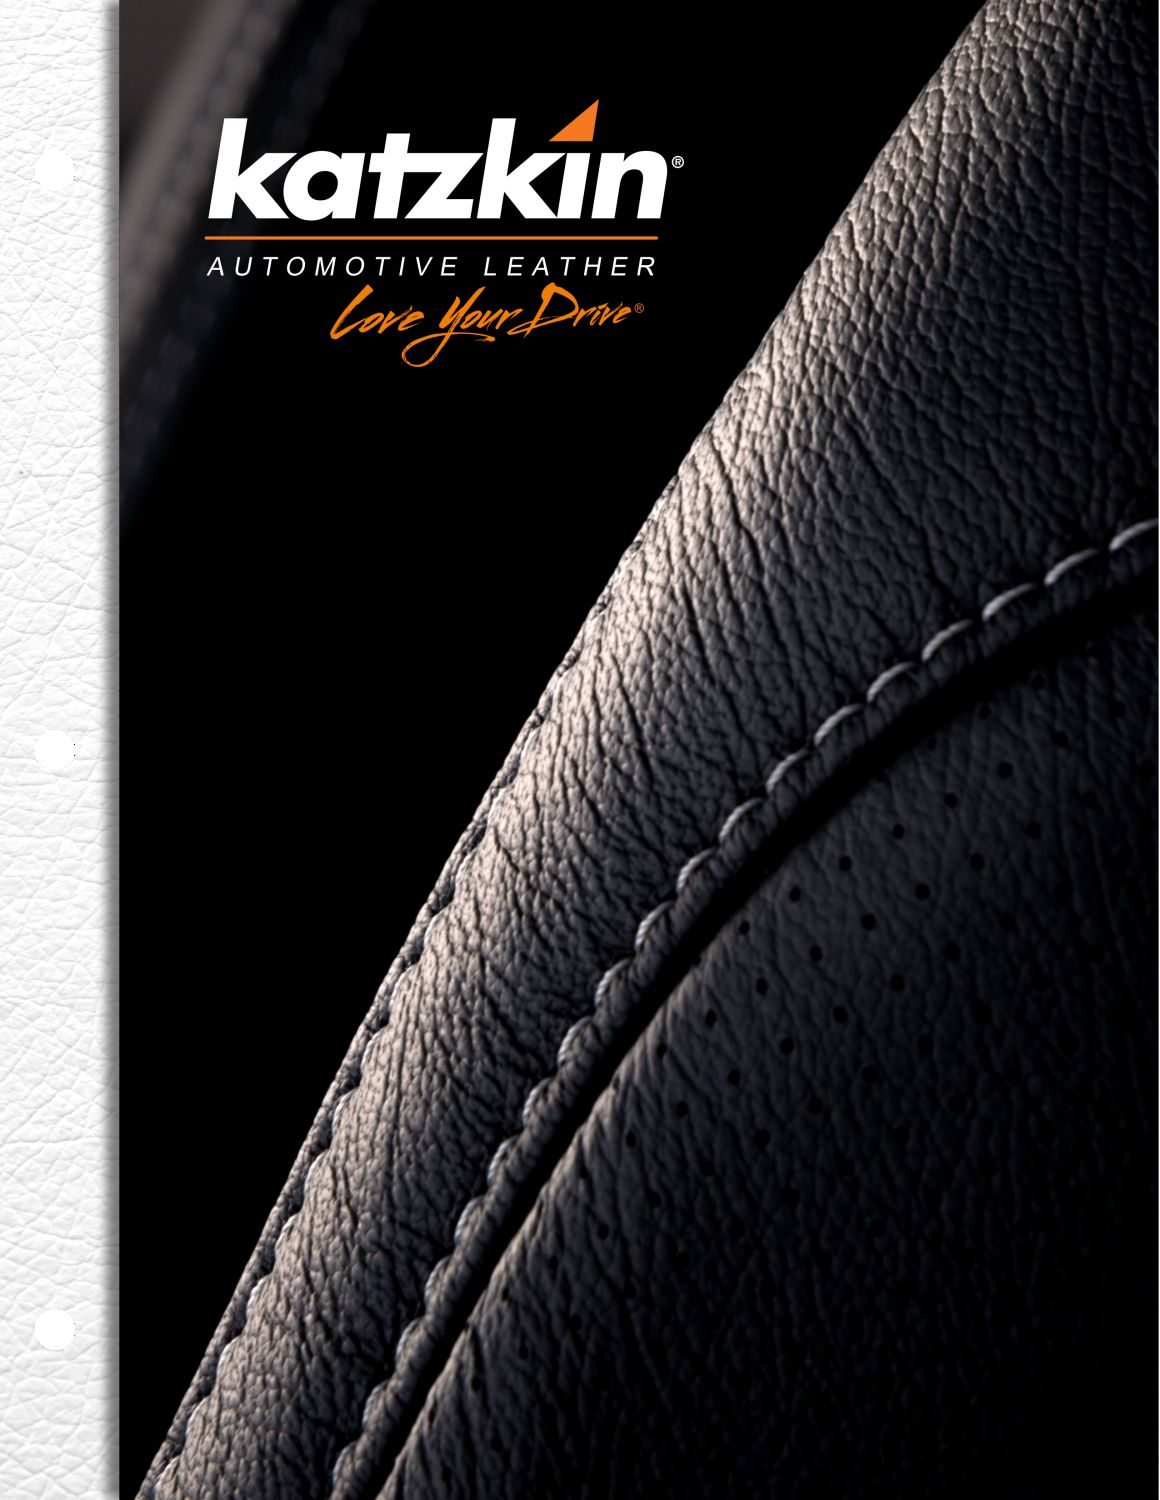 download 2019 Katzkin Swatch Card